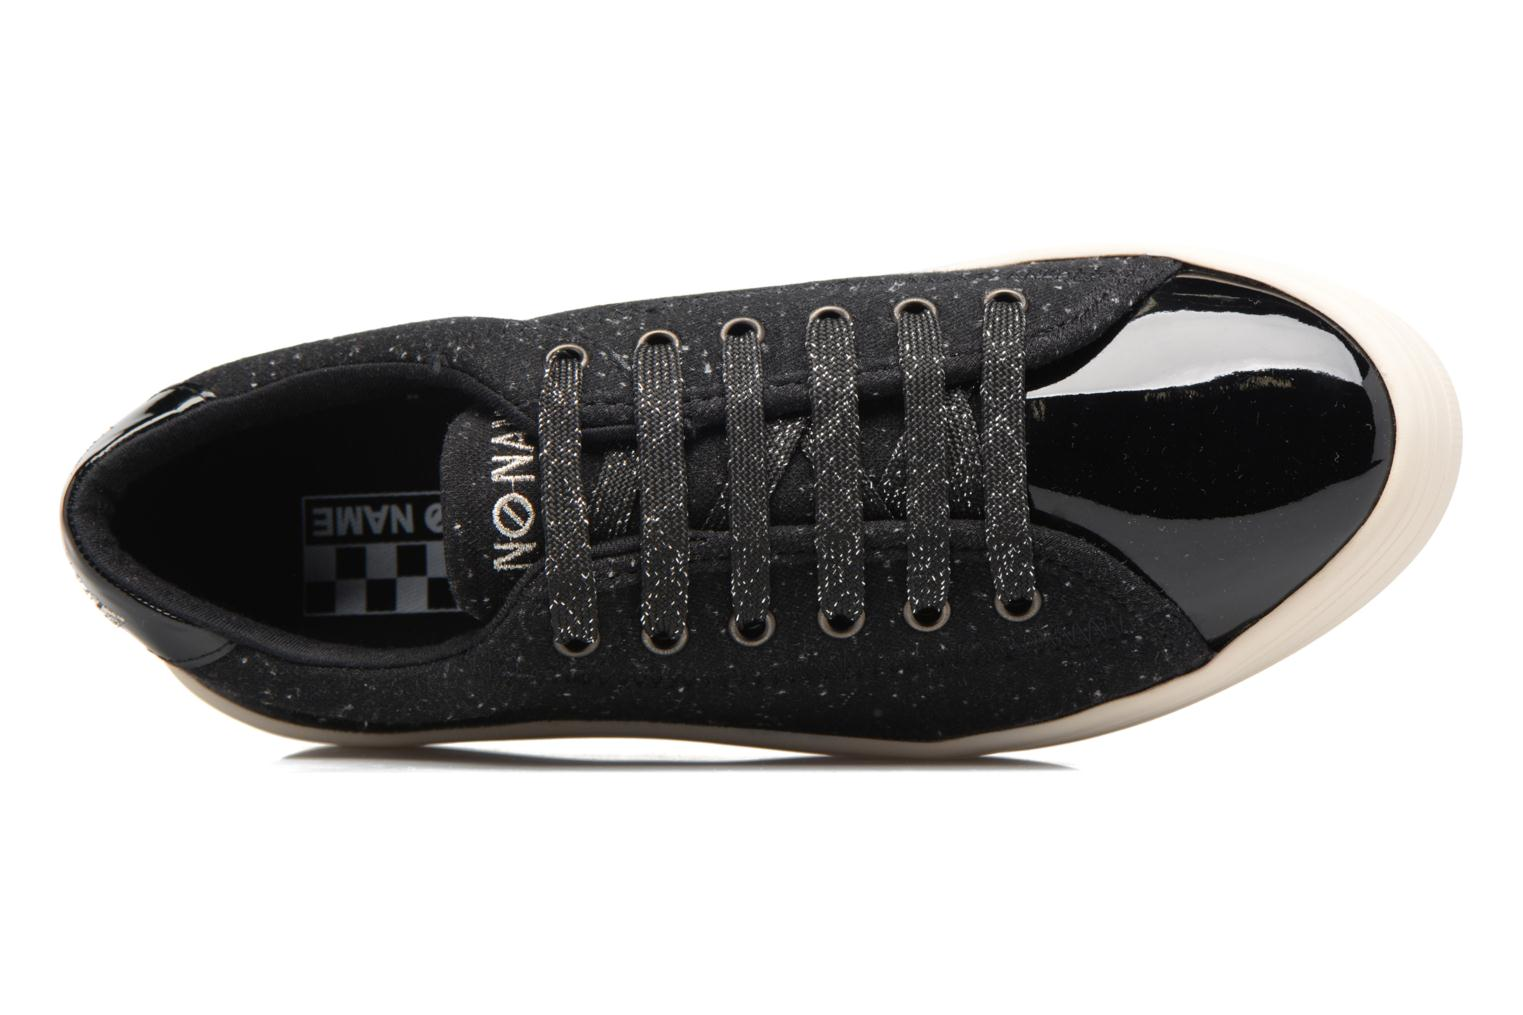 Plato sneaker patent Black fox dove